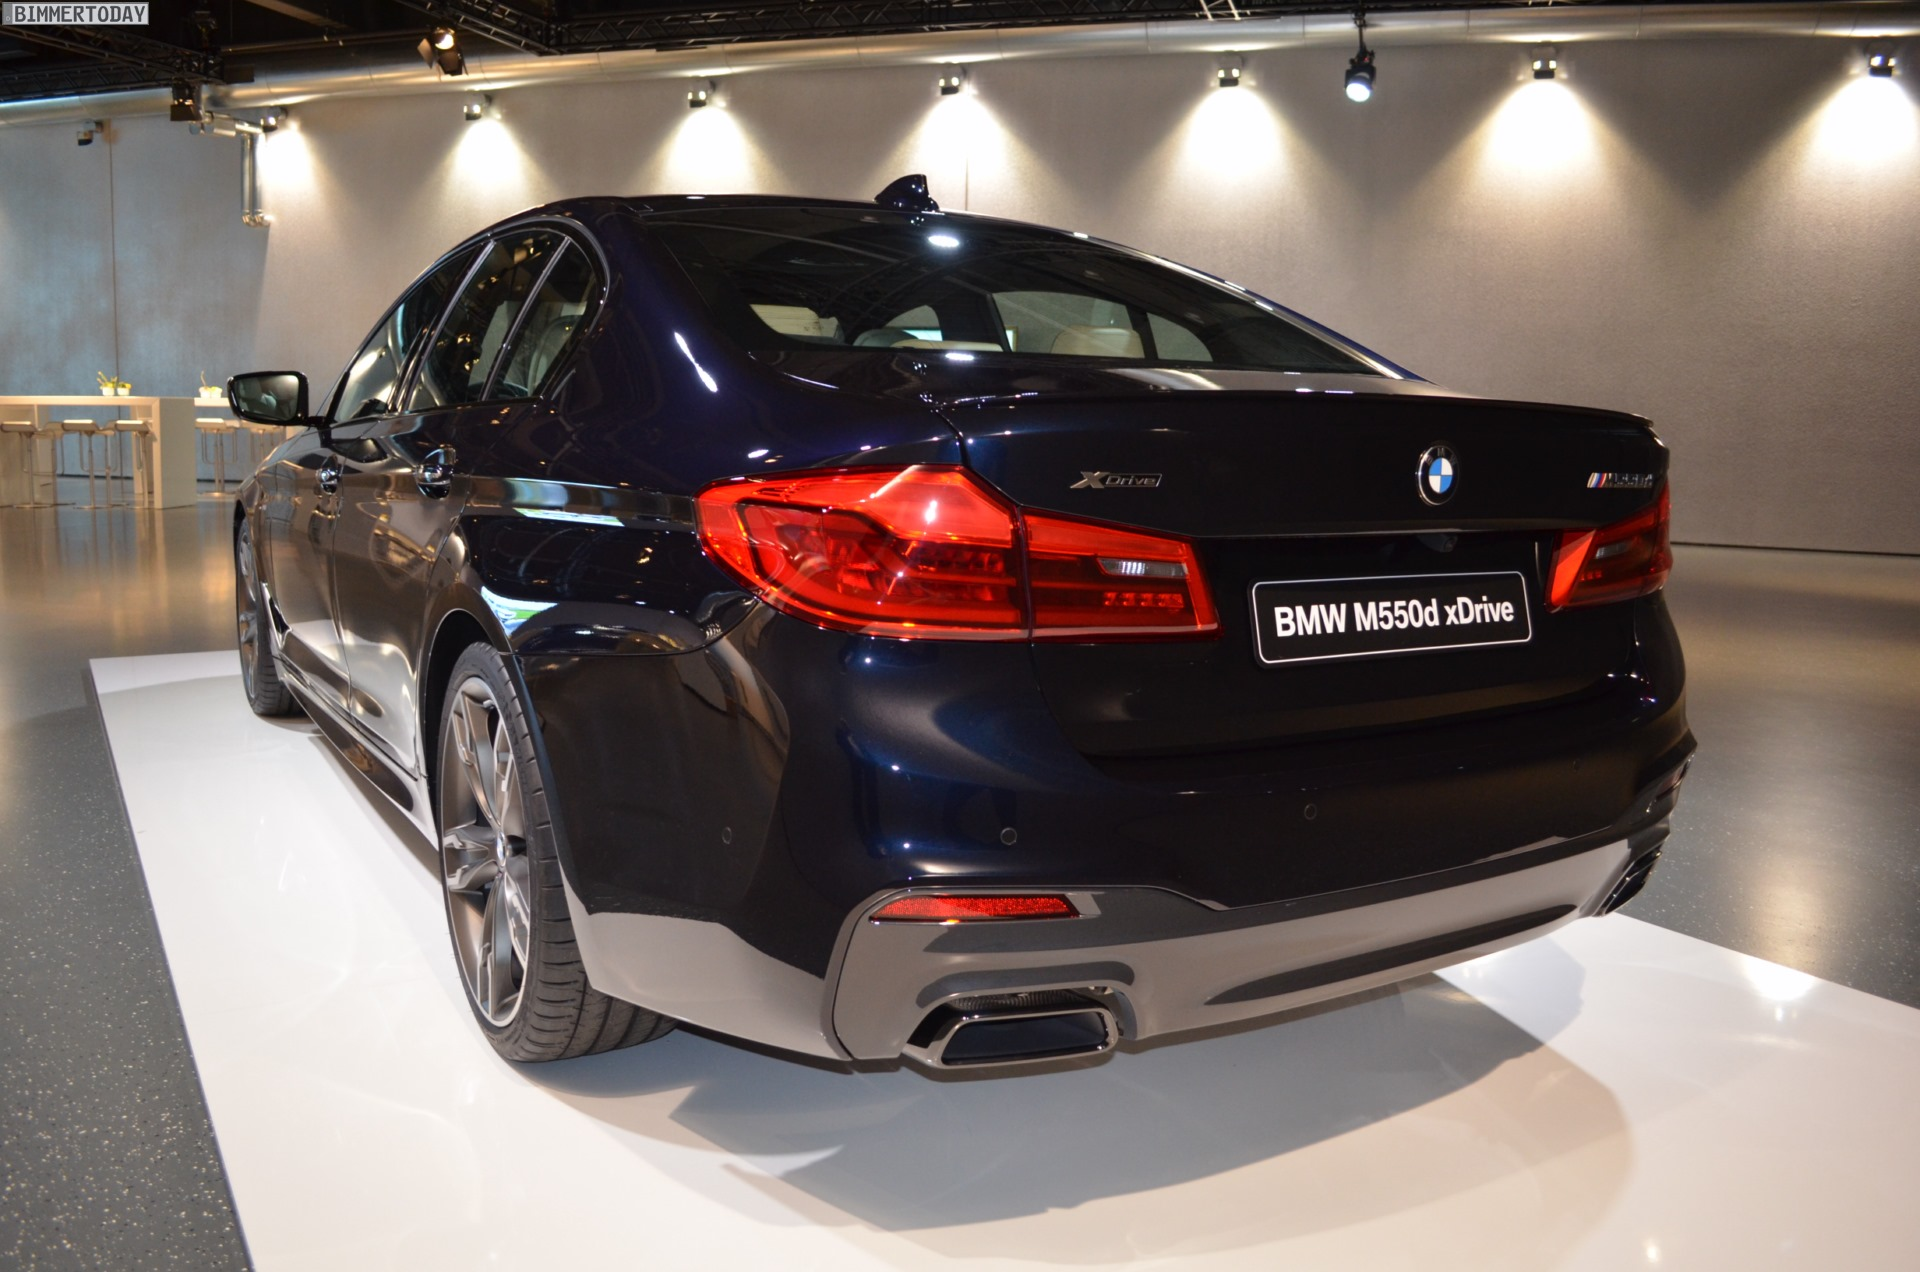 2017 BMW M550d: First pictures of the G30 with quad-turbo diesel